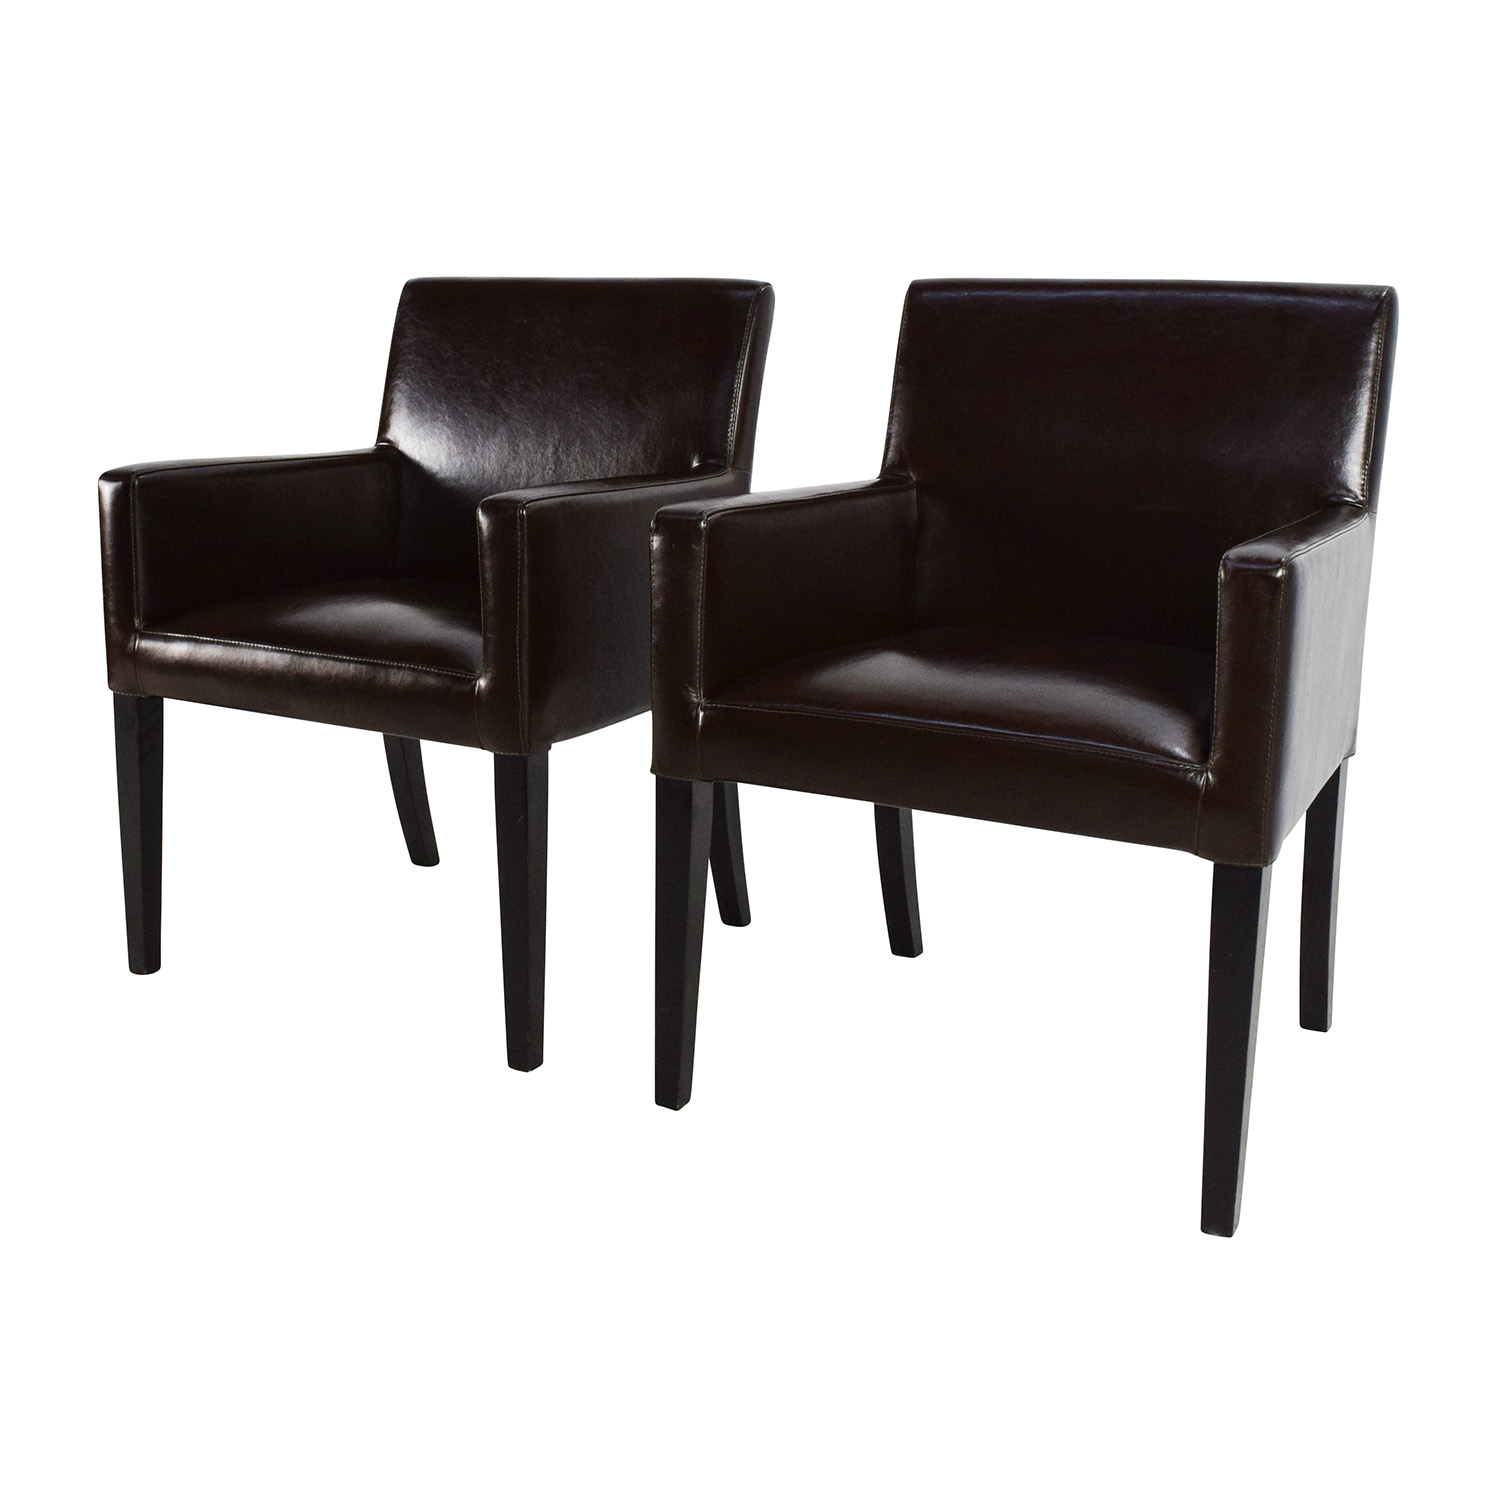 Furniture Chairs Black 82 Off Black Leather Office Chairs Chairs